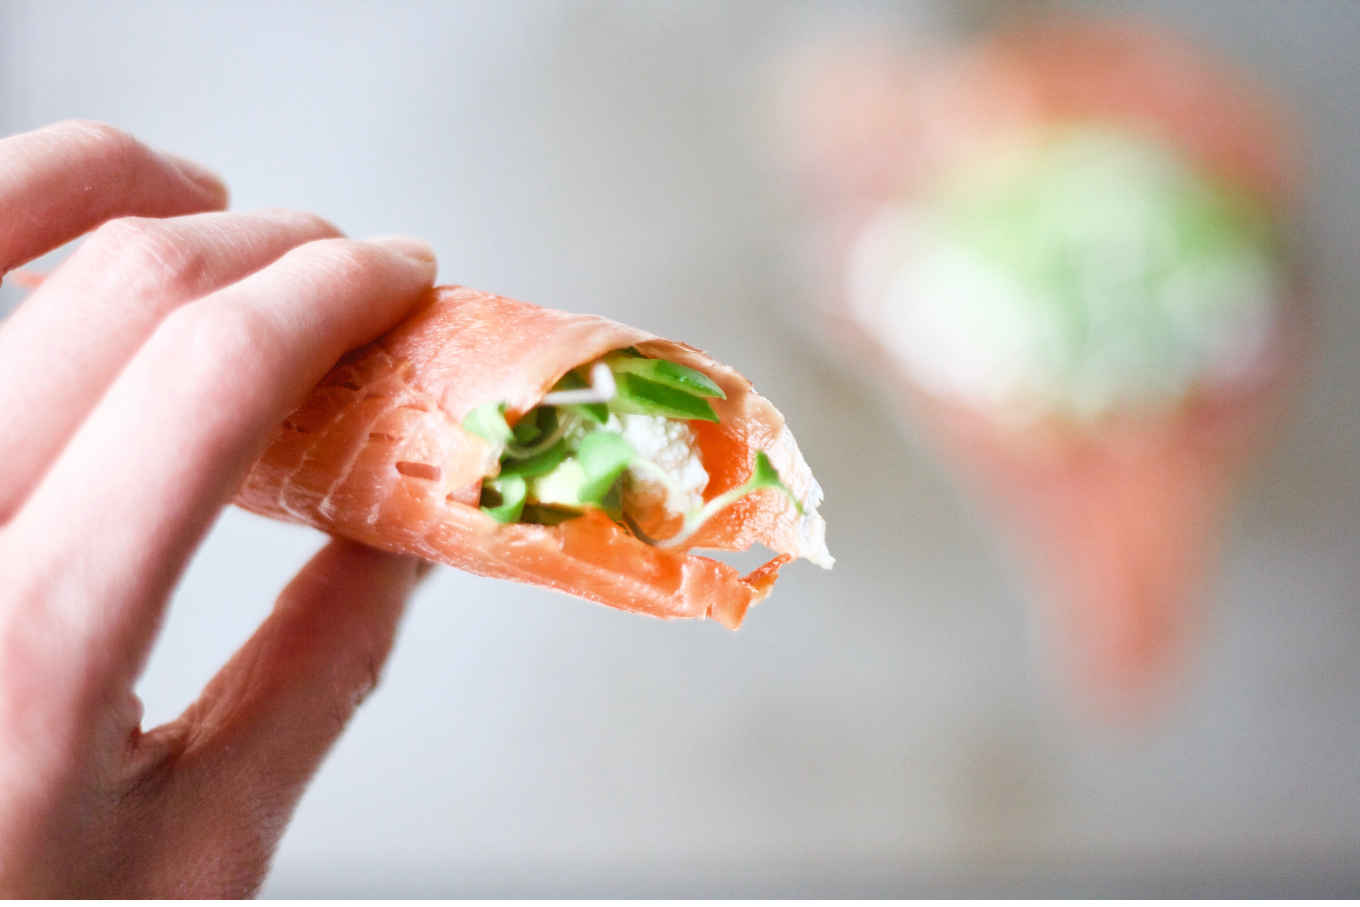 Make your own kefir cheese and eat with creativity. You will love this rice-less sushi for extra dose of probiotics from the kefir cheese. Along with smoked salmon, avocado, sesame seeds, cucumber, microgreens, this probiotic sushi not only is a tasty treat, but with abundant healthy fats also a super brain food to support mental health and brain functions. Comes with a yummy alternative dipping sauce recipe that you can make without wasabi.